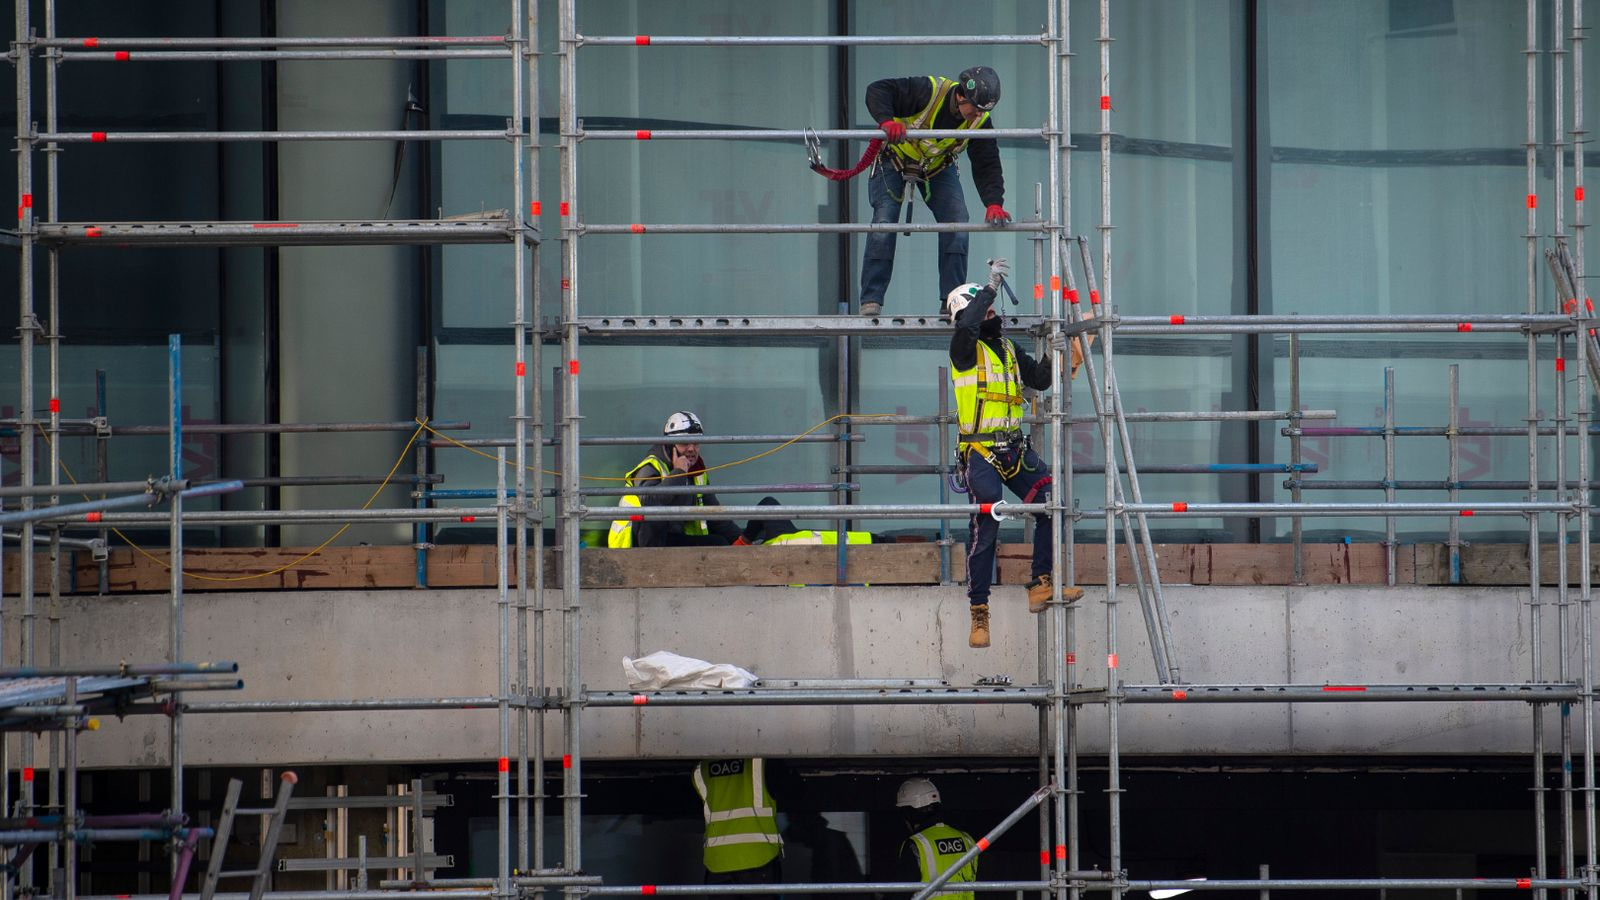 'Steep rebound' in UK construction output as more sites reopen | Business News